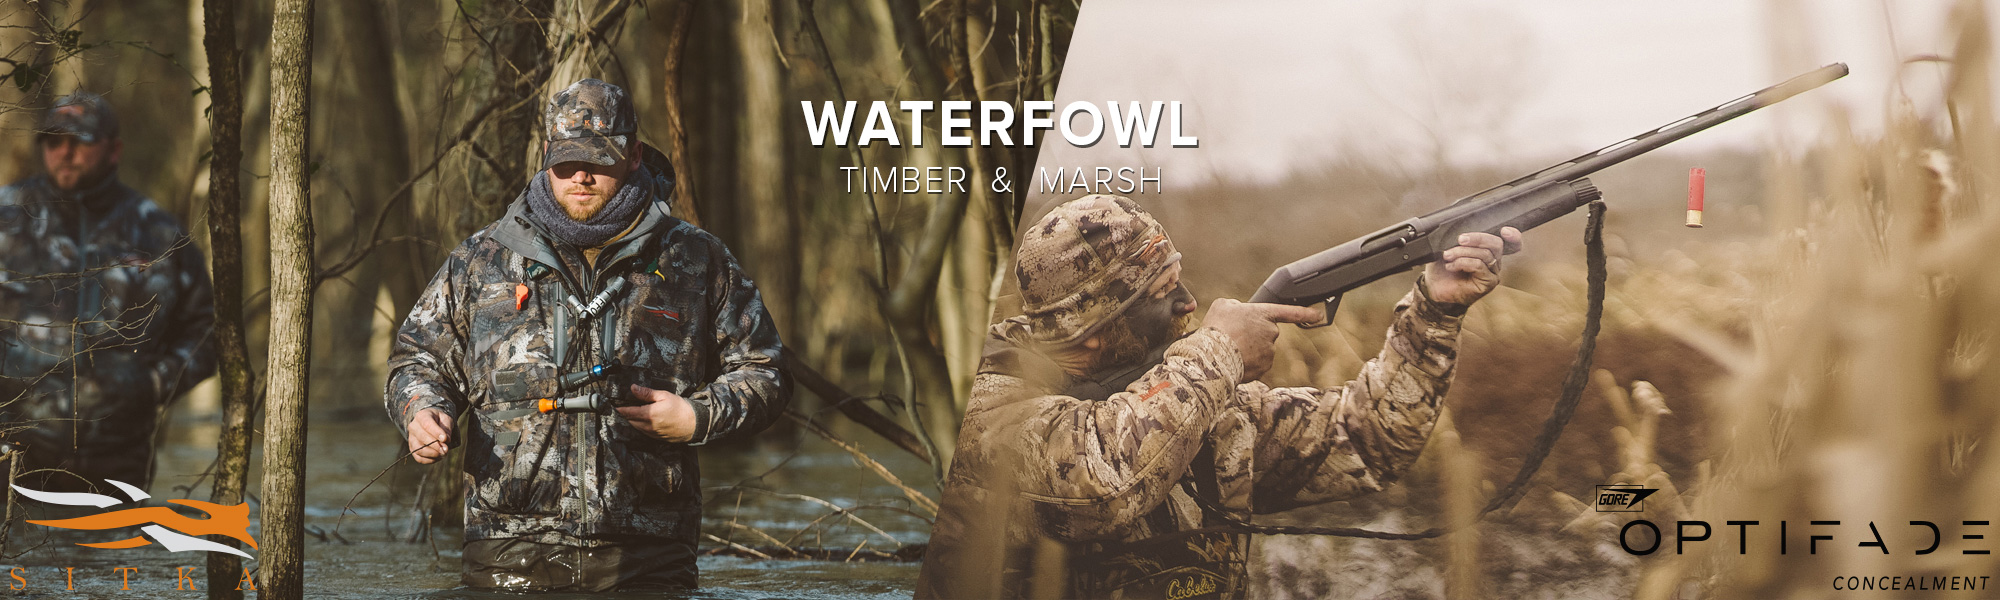 Sitka Waterfowl Gear